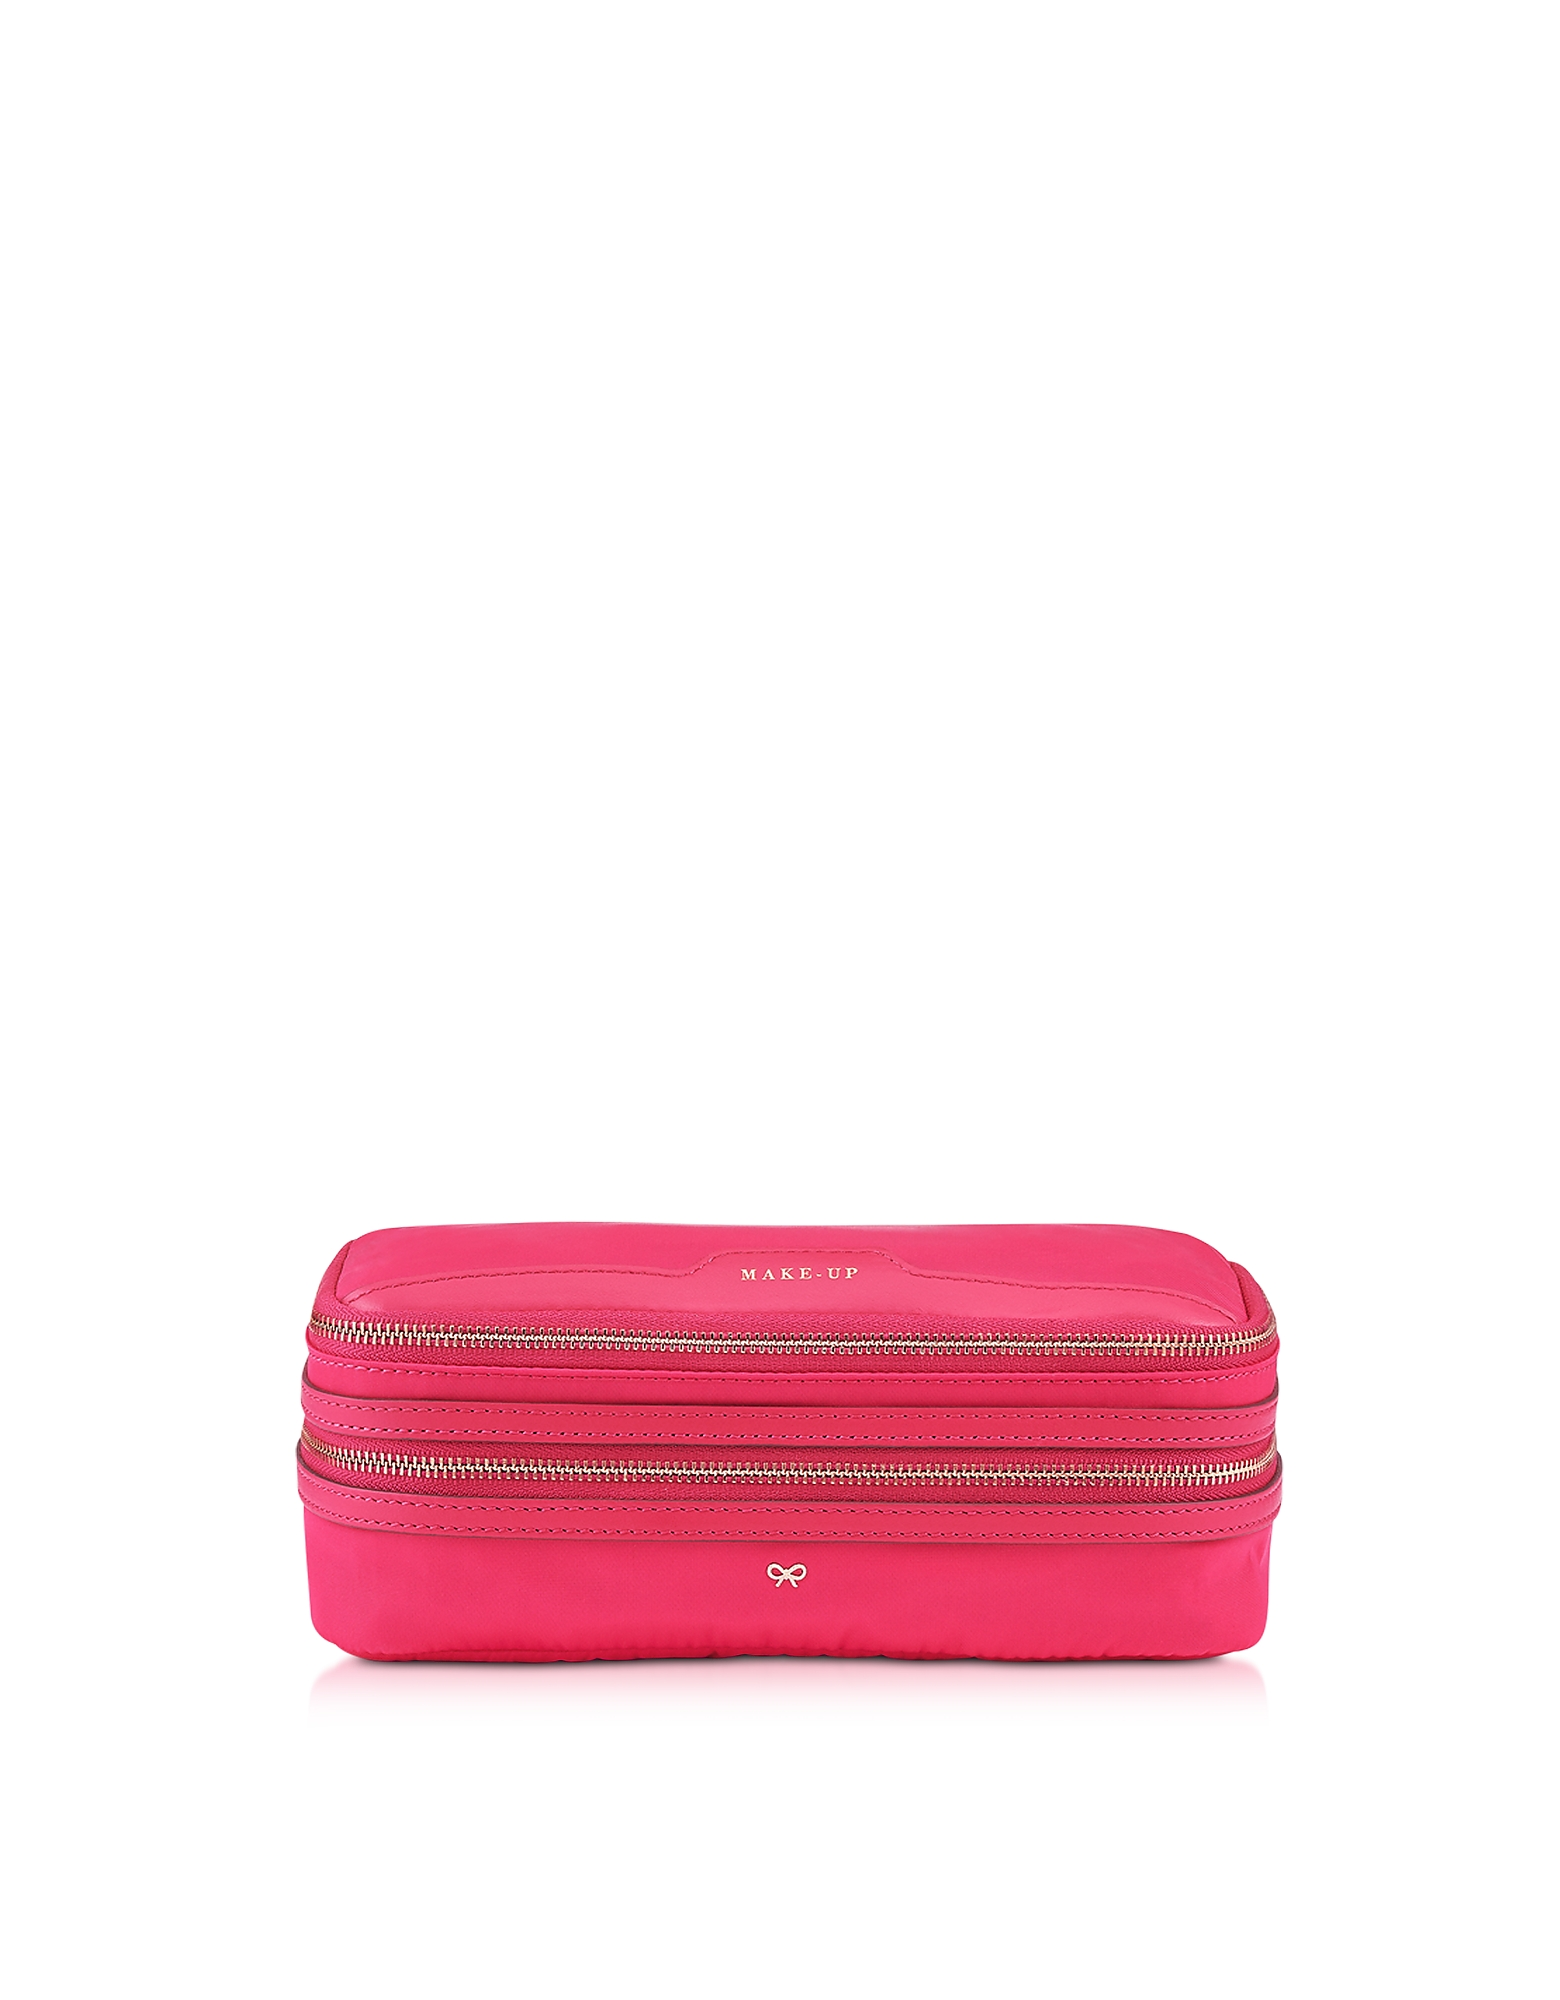 Make-Up Pouch, Hot pink